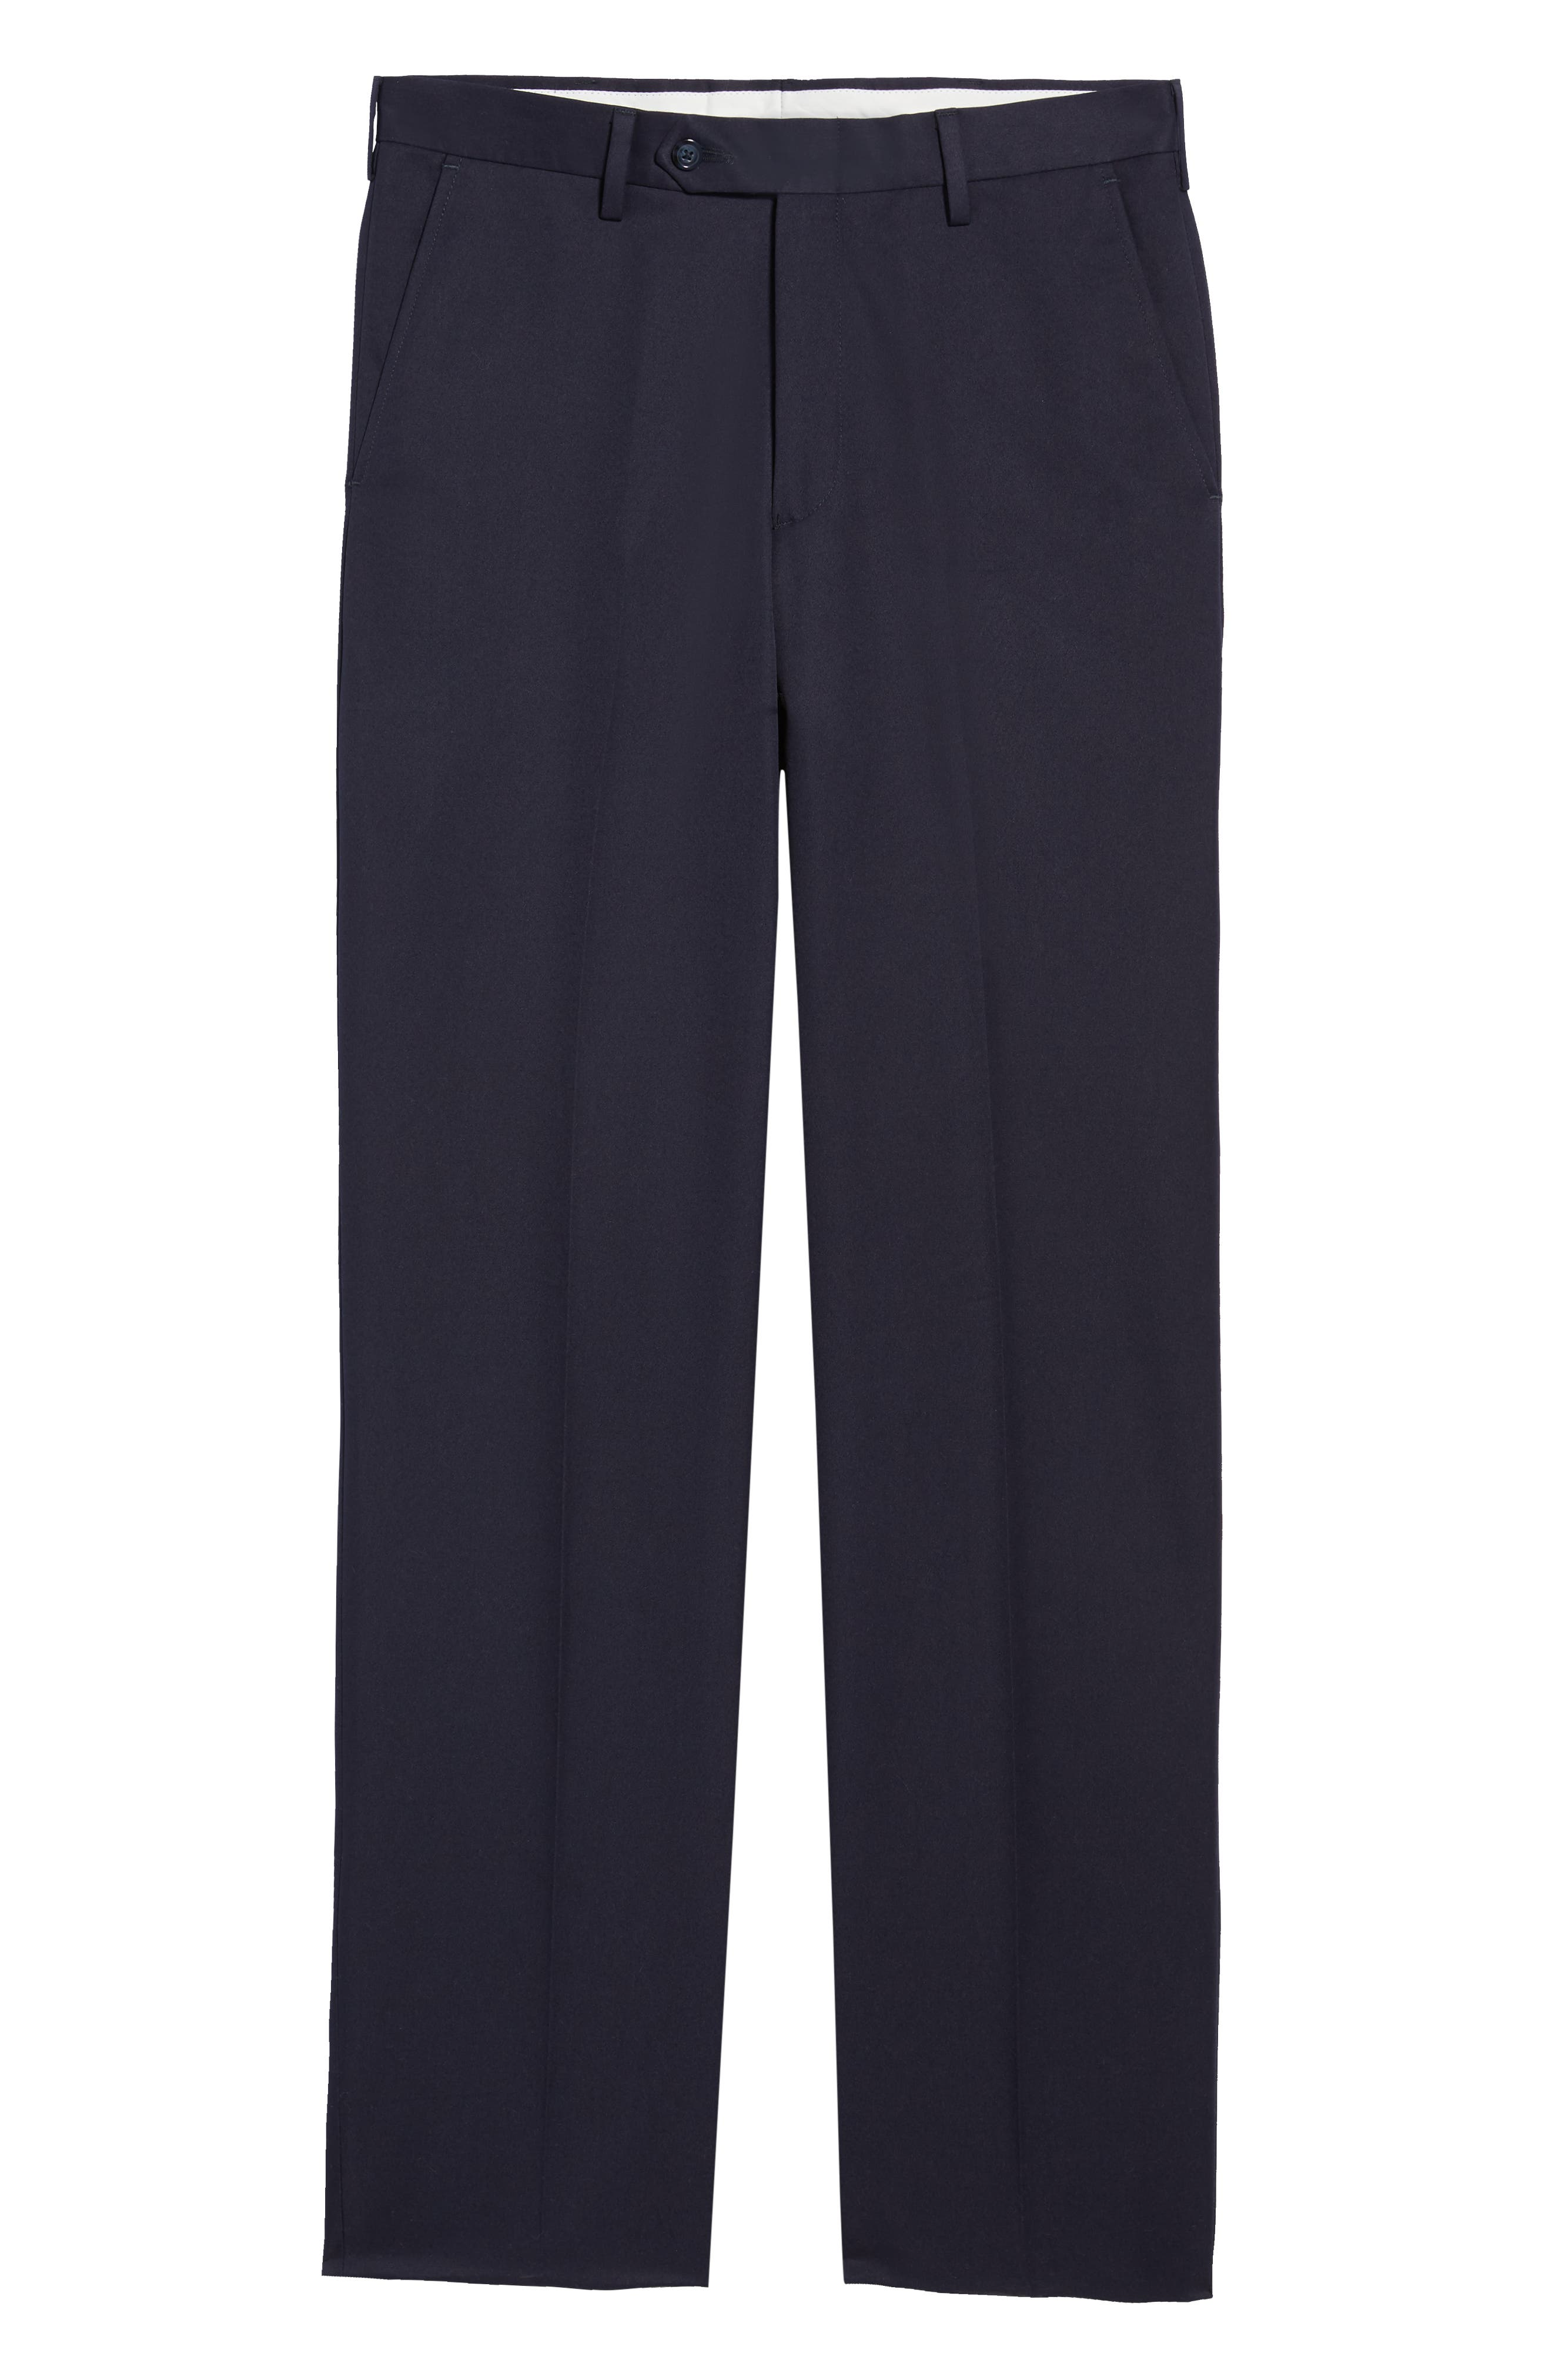 Classic Fit Flat Front Microfiber Performance Trousers,                             Alternate thumbnail 6, color,                             NAVY